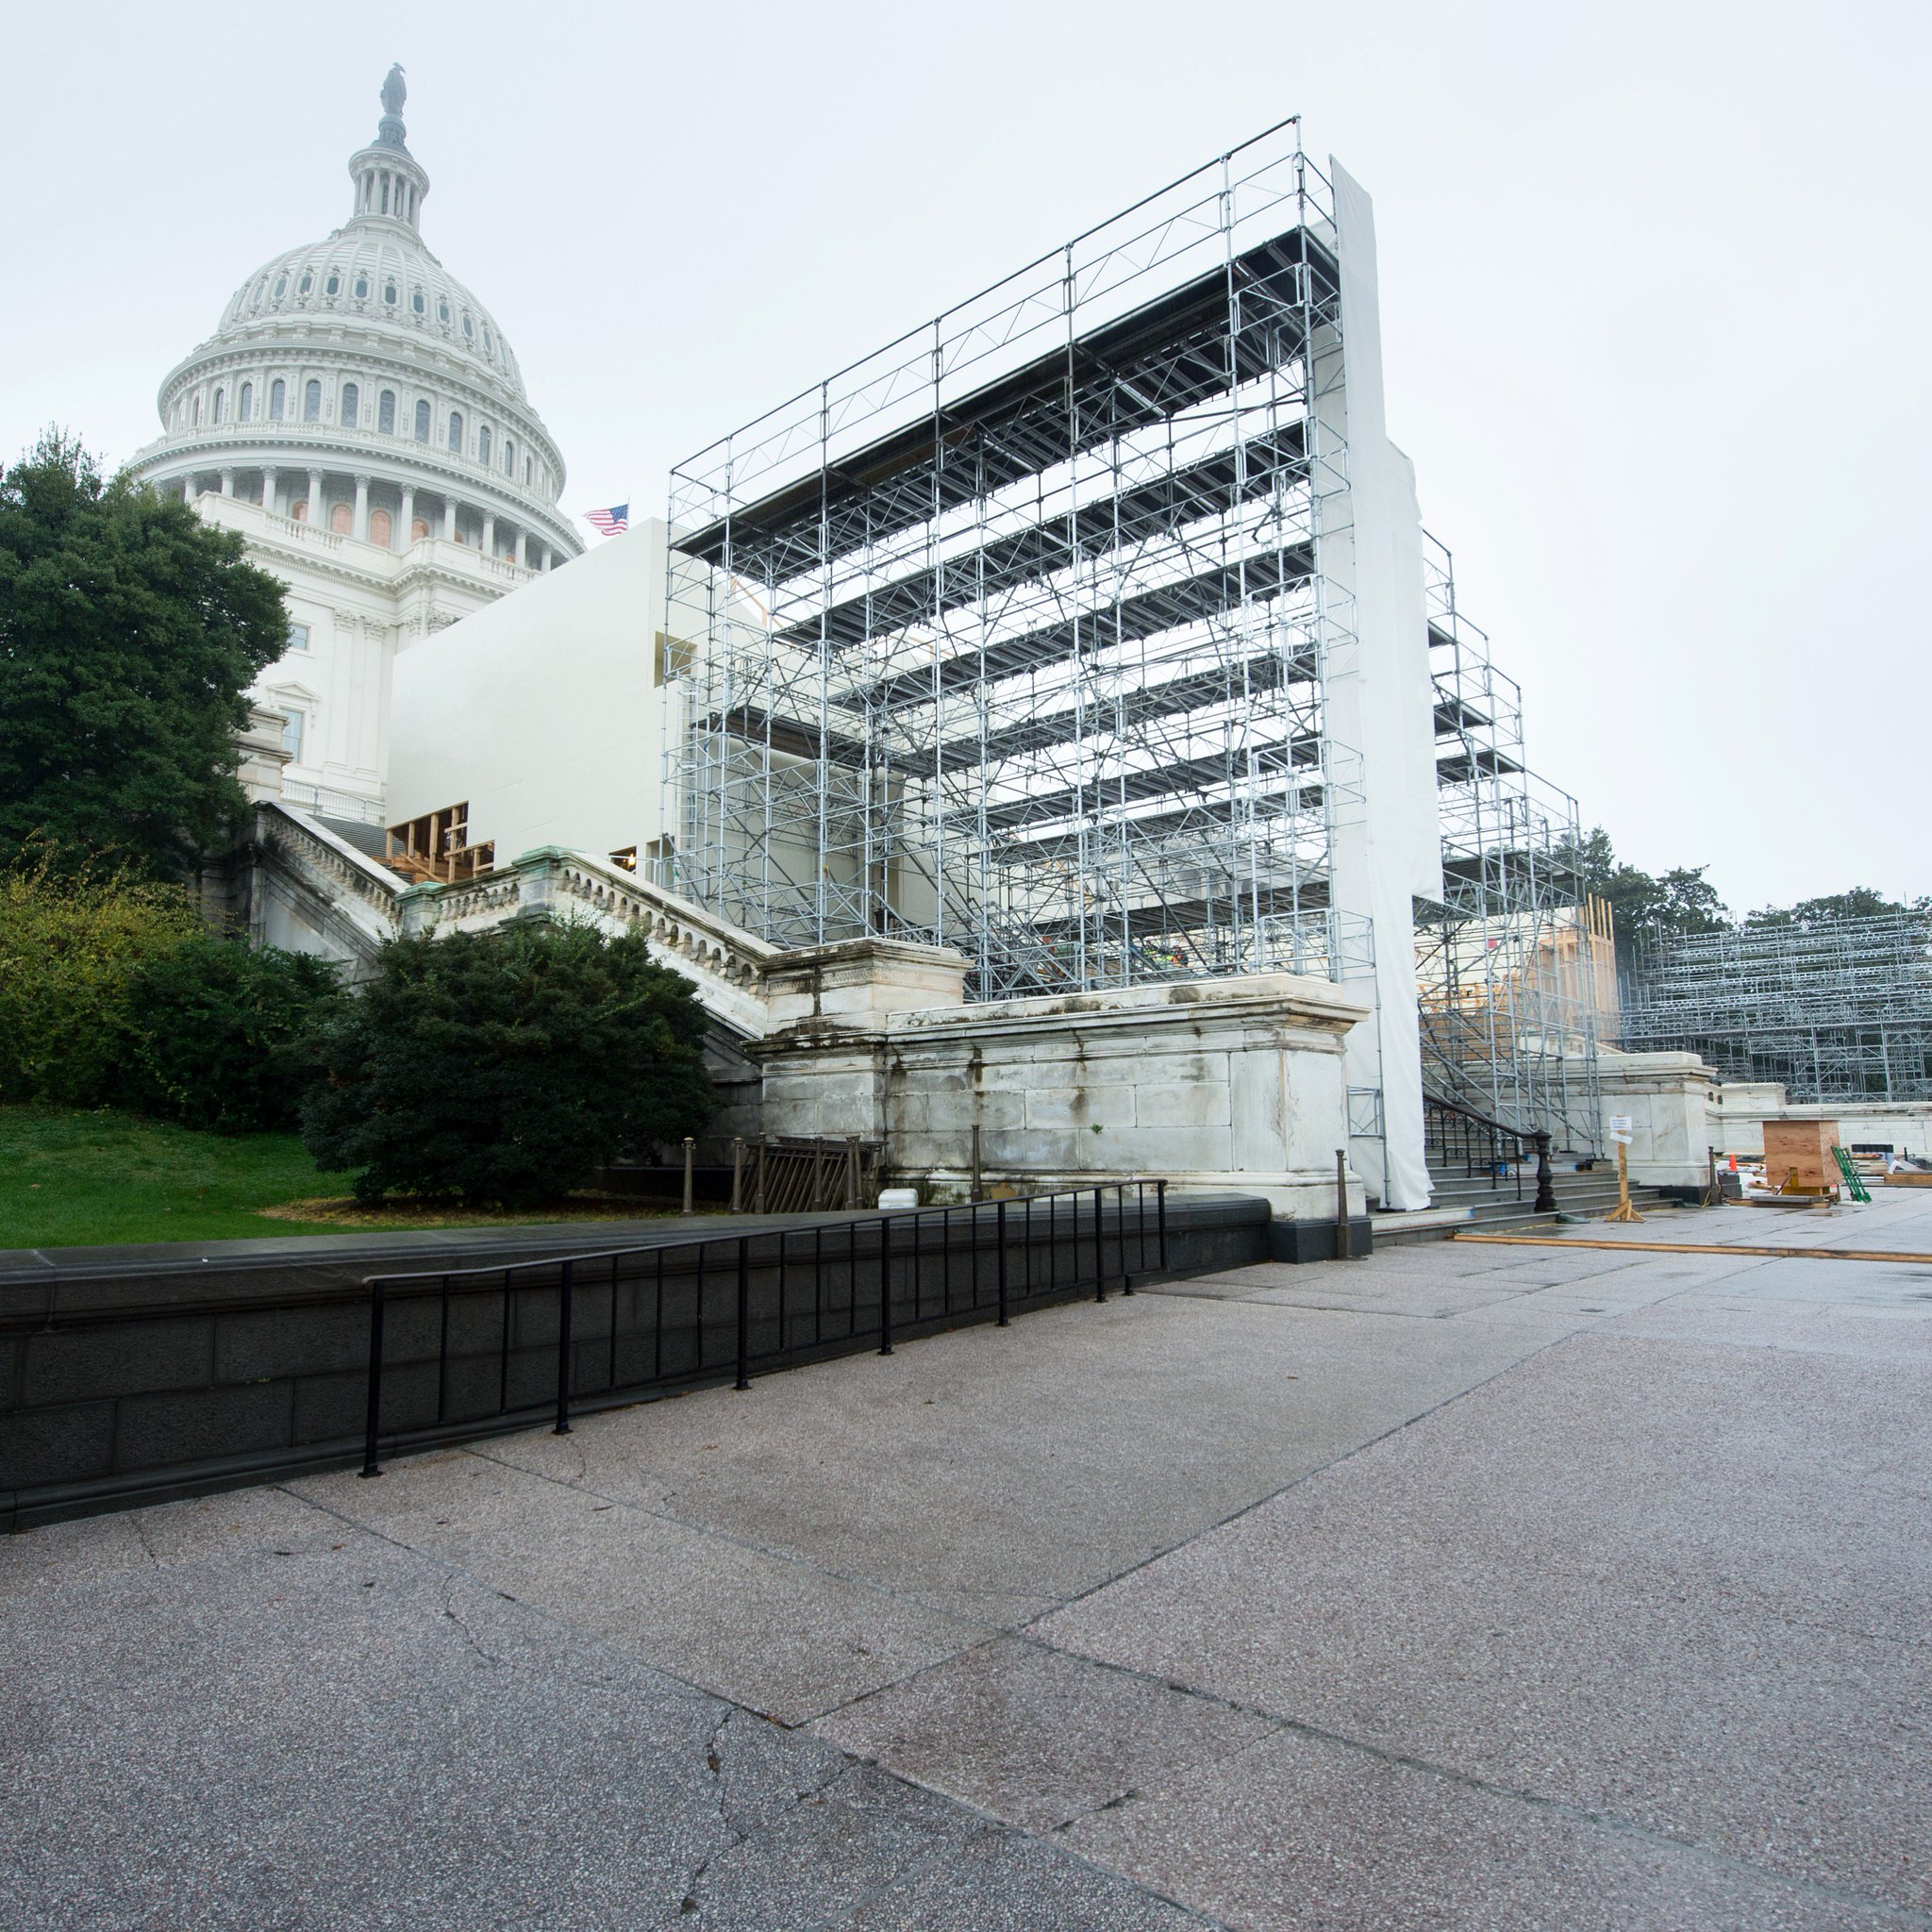 Construction continues on the 58th Presidential Inaugural Stands! #WestFrontWednesday #inauguration2017 #January20th https://t.co/kEHxw90Bhi